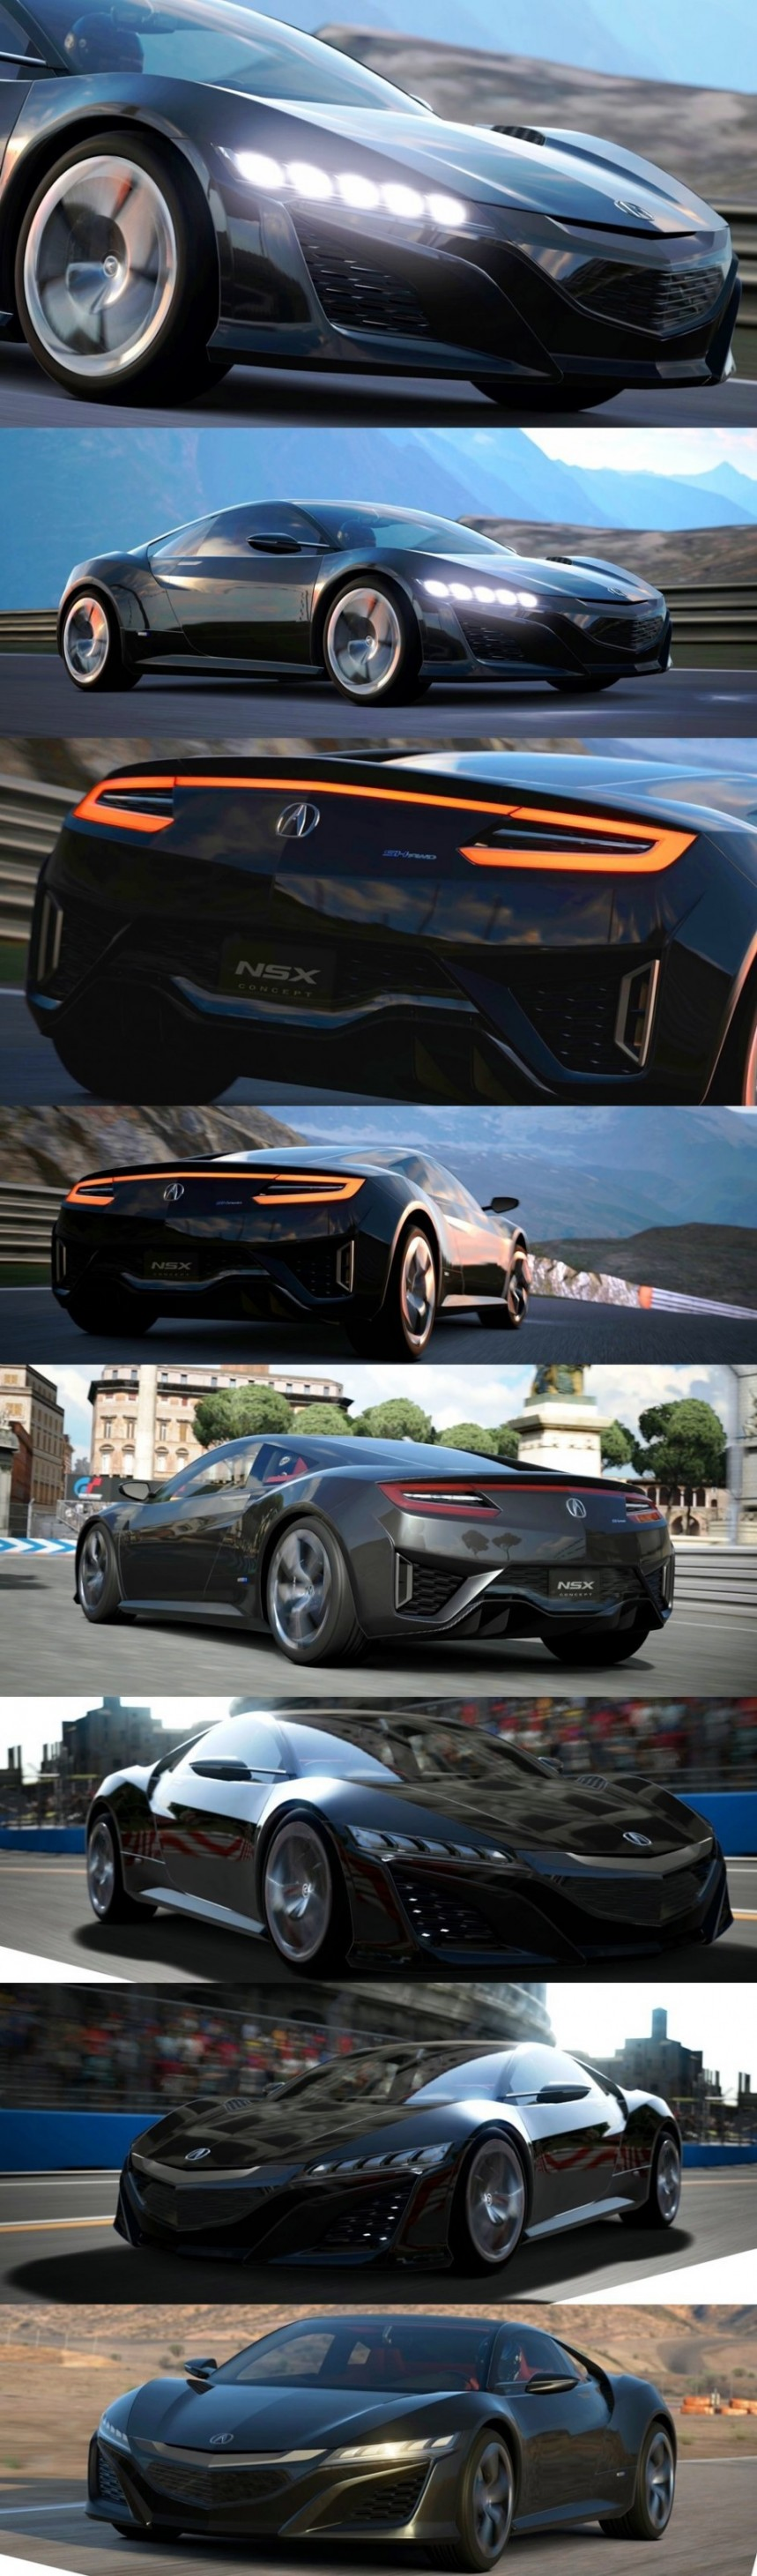 Acura NSX (Concept) Makes Thrilling Track Debut in Gran Turismo 6 Acura NSX (Concept) Makes Thrilling Track Debut in Gran Turismo 6 Acura NSX (Concept) Makes Thrilling Track Debut in Gran Turismo 6 Acura NSX (Concept) Makes Thrilling Track Debut in Gran Turismo 6 Acura NSX (Concept) Makes Thrilling Track Debut in Gran Turismo 6